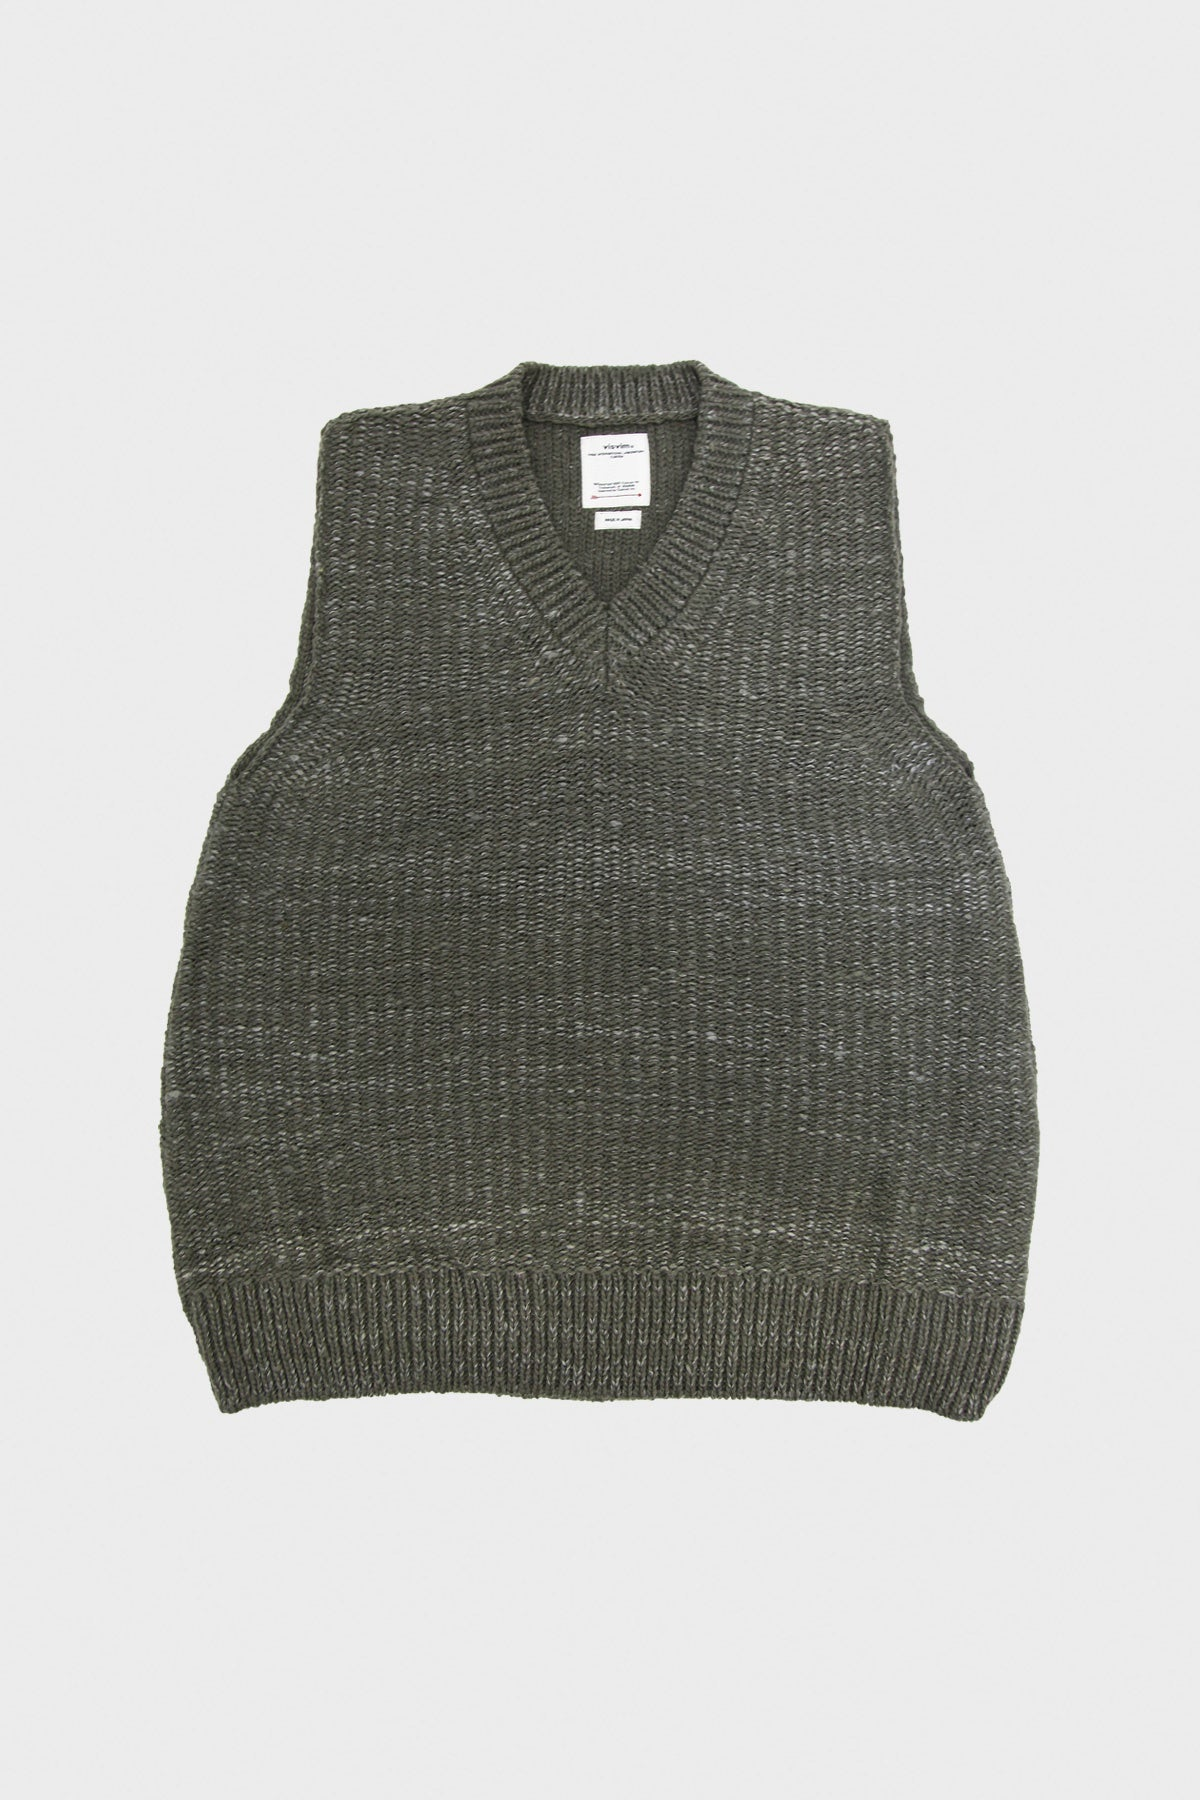 Visvim - Tussar V-Neck Vest - Grey - Canoe Club